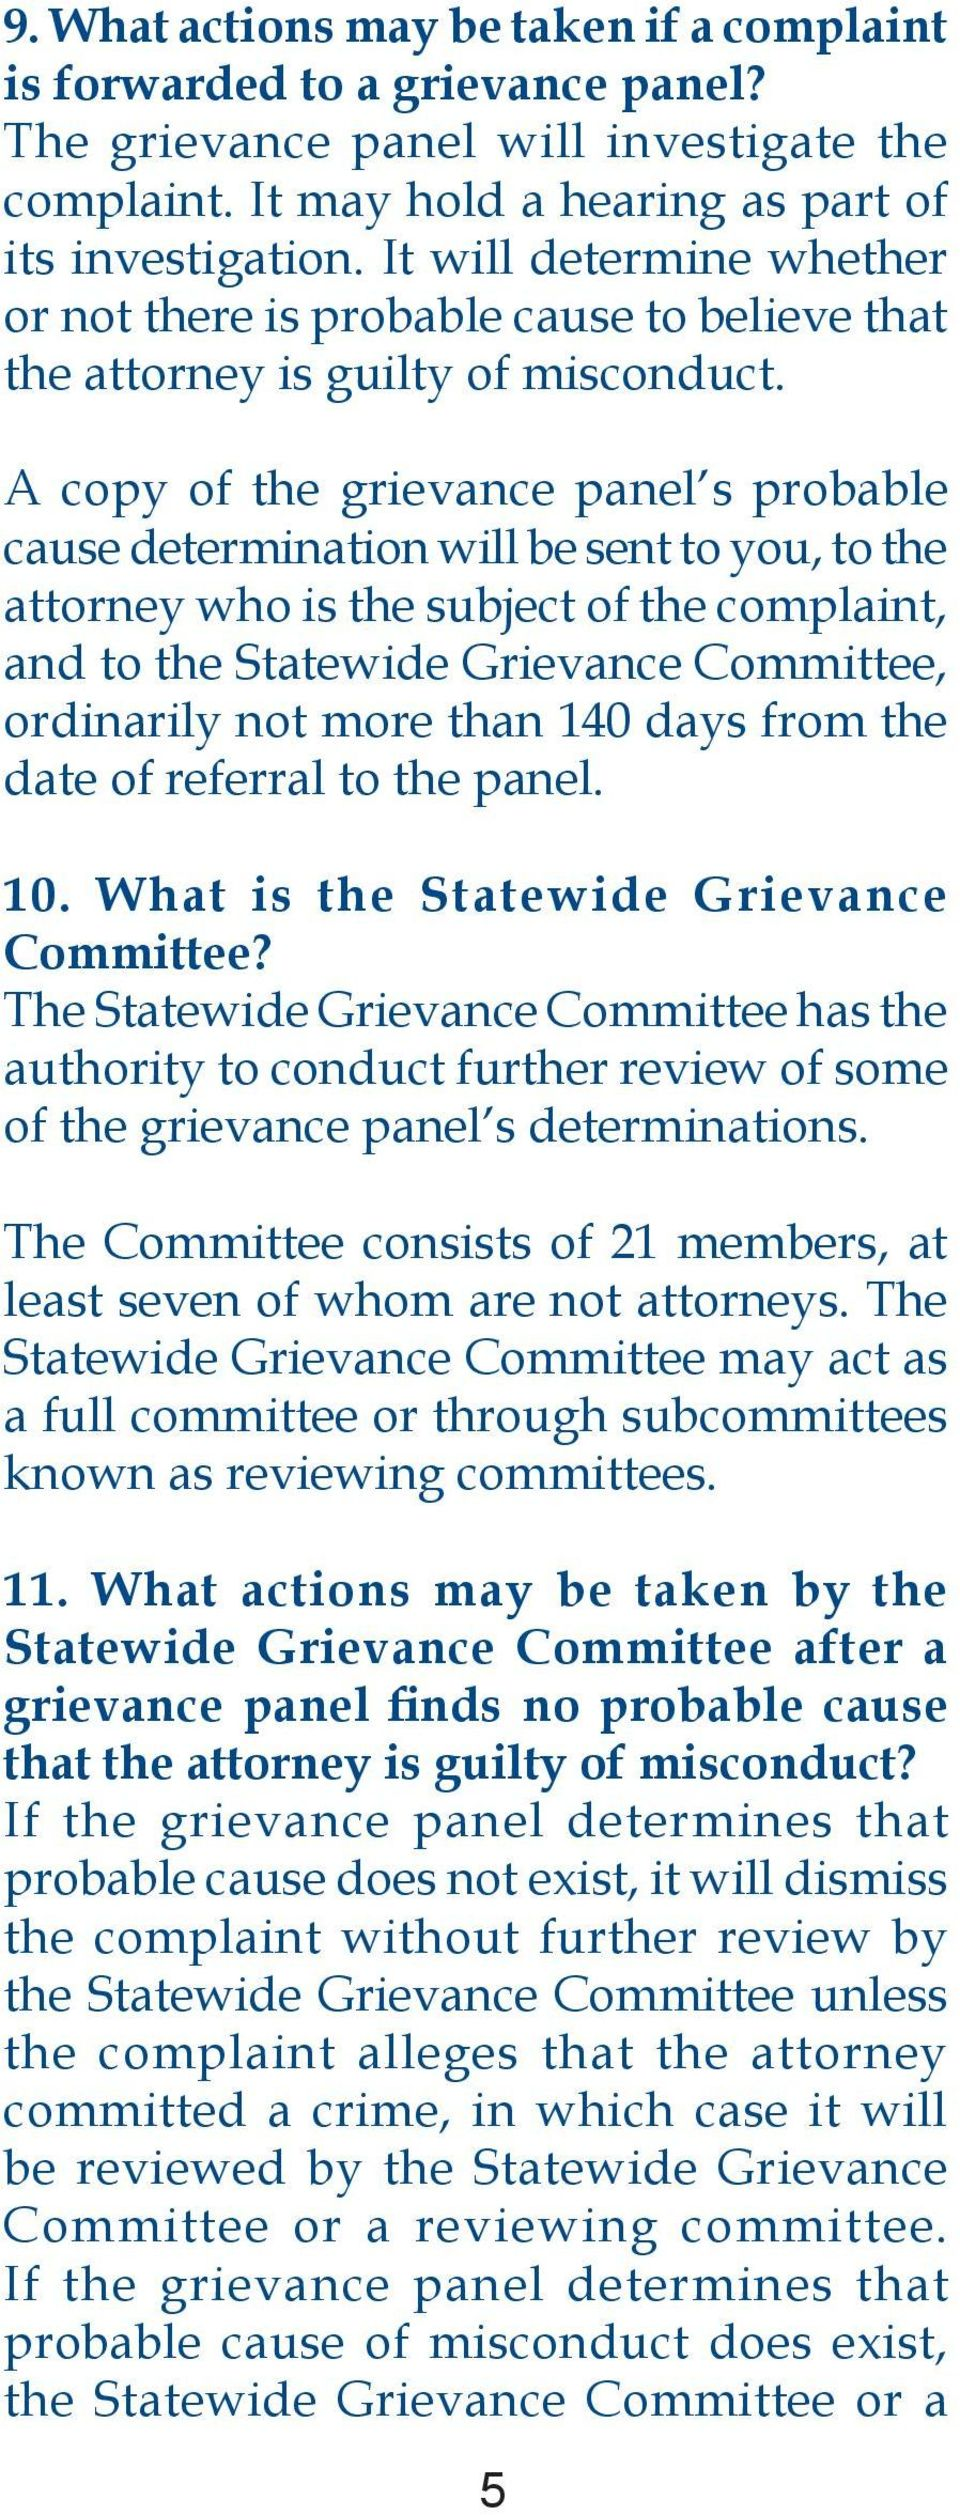 A copy of the grievance panel s probable cause determination will be sent to you, to the attorney who is the subject of the complaint, and to the Statewide Grievance Committee, ordinarily not more